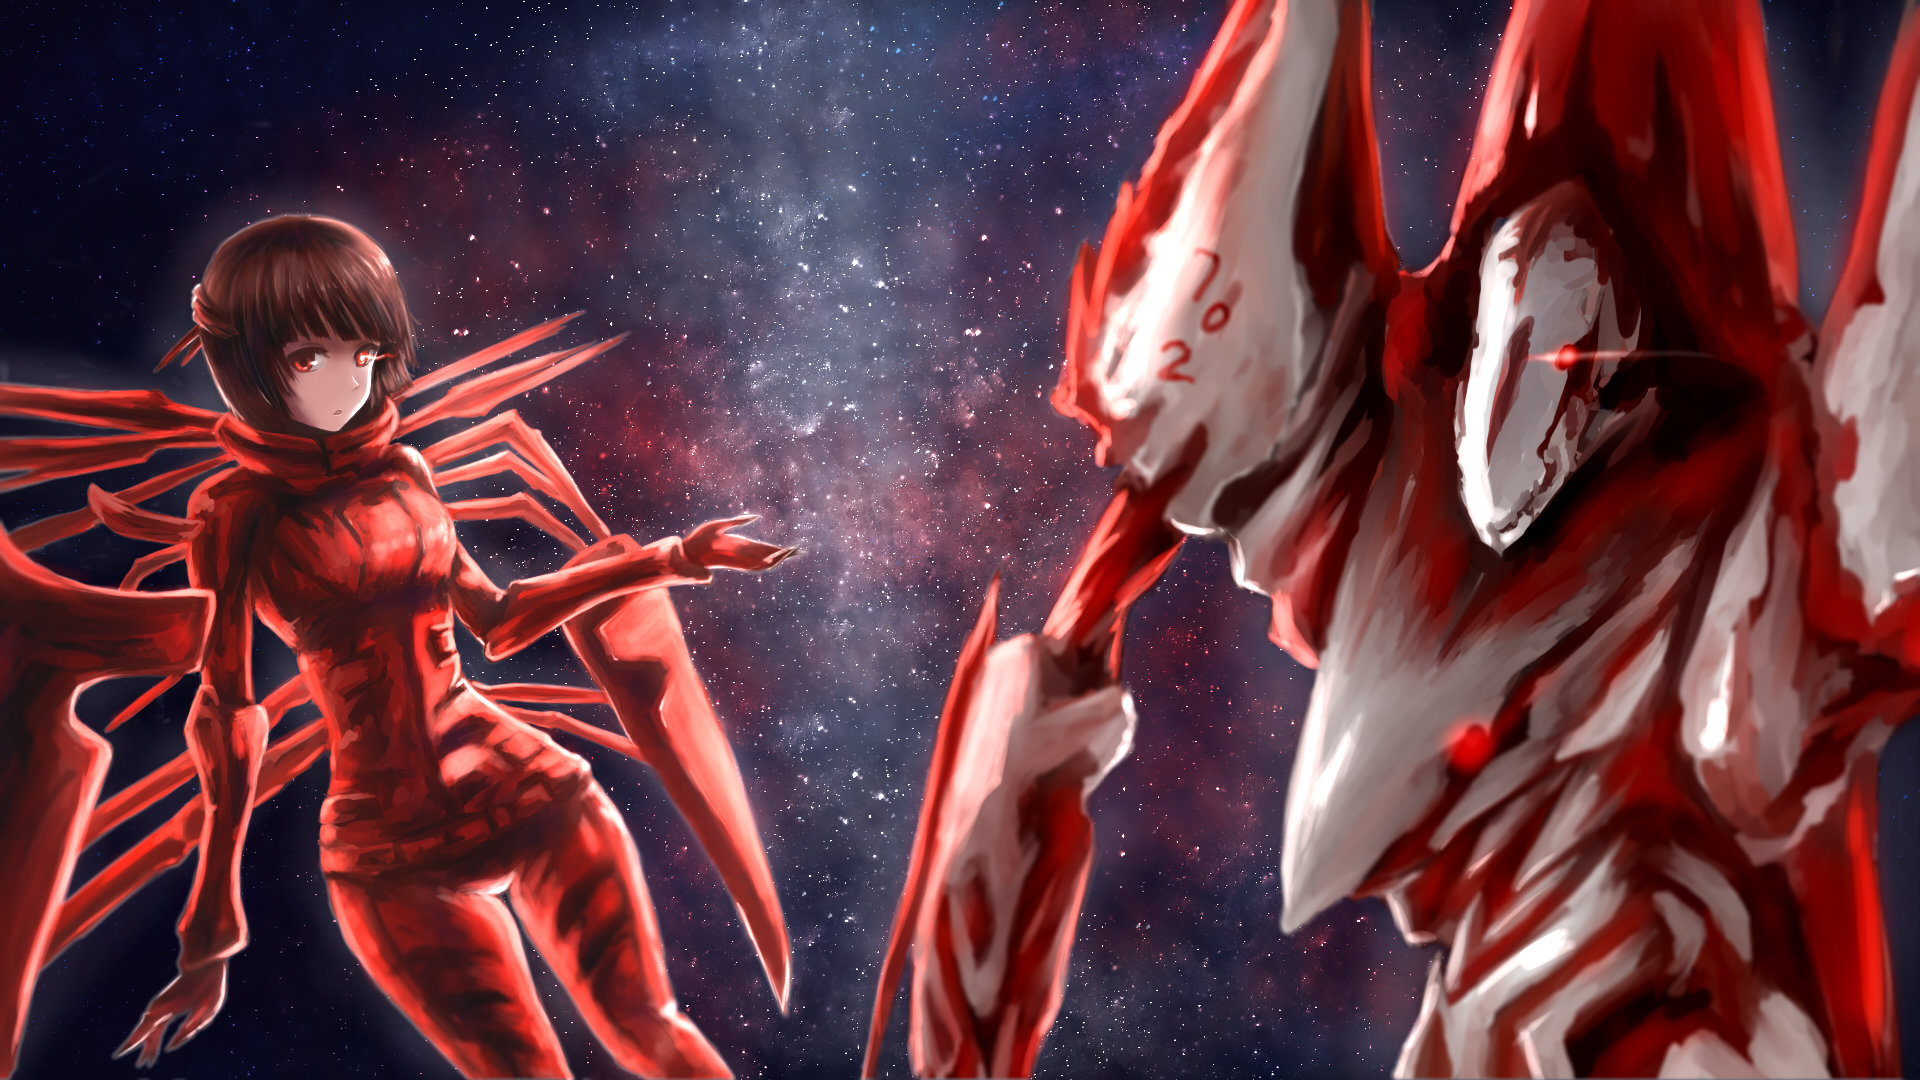 Awesome Knights Of Sidonia free wallpaper ID:294856 for 1080p computer